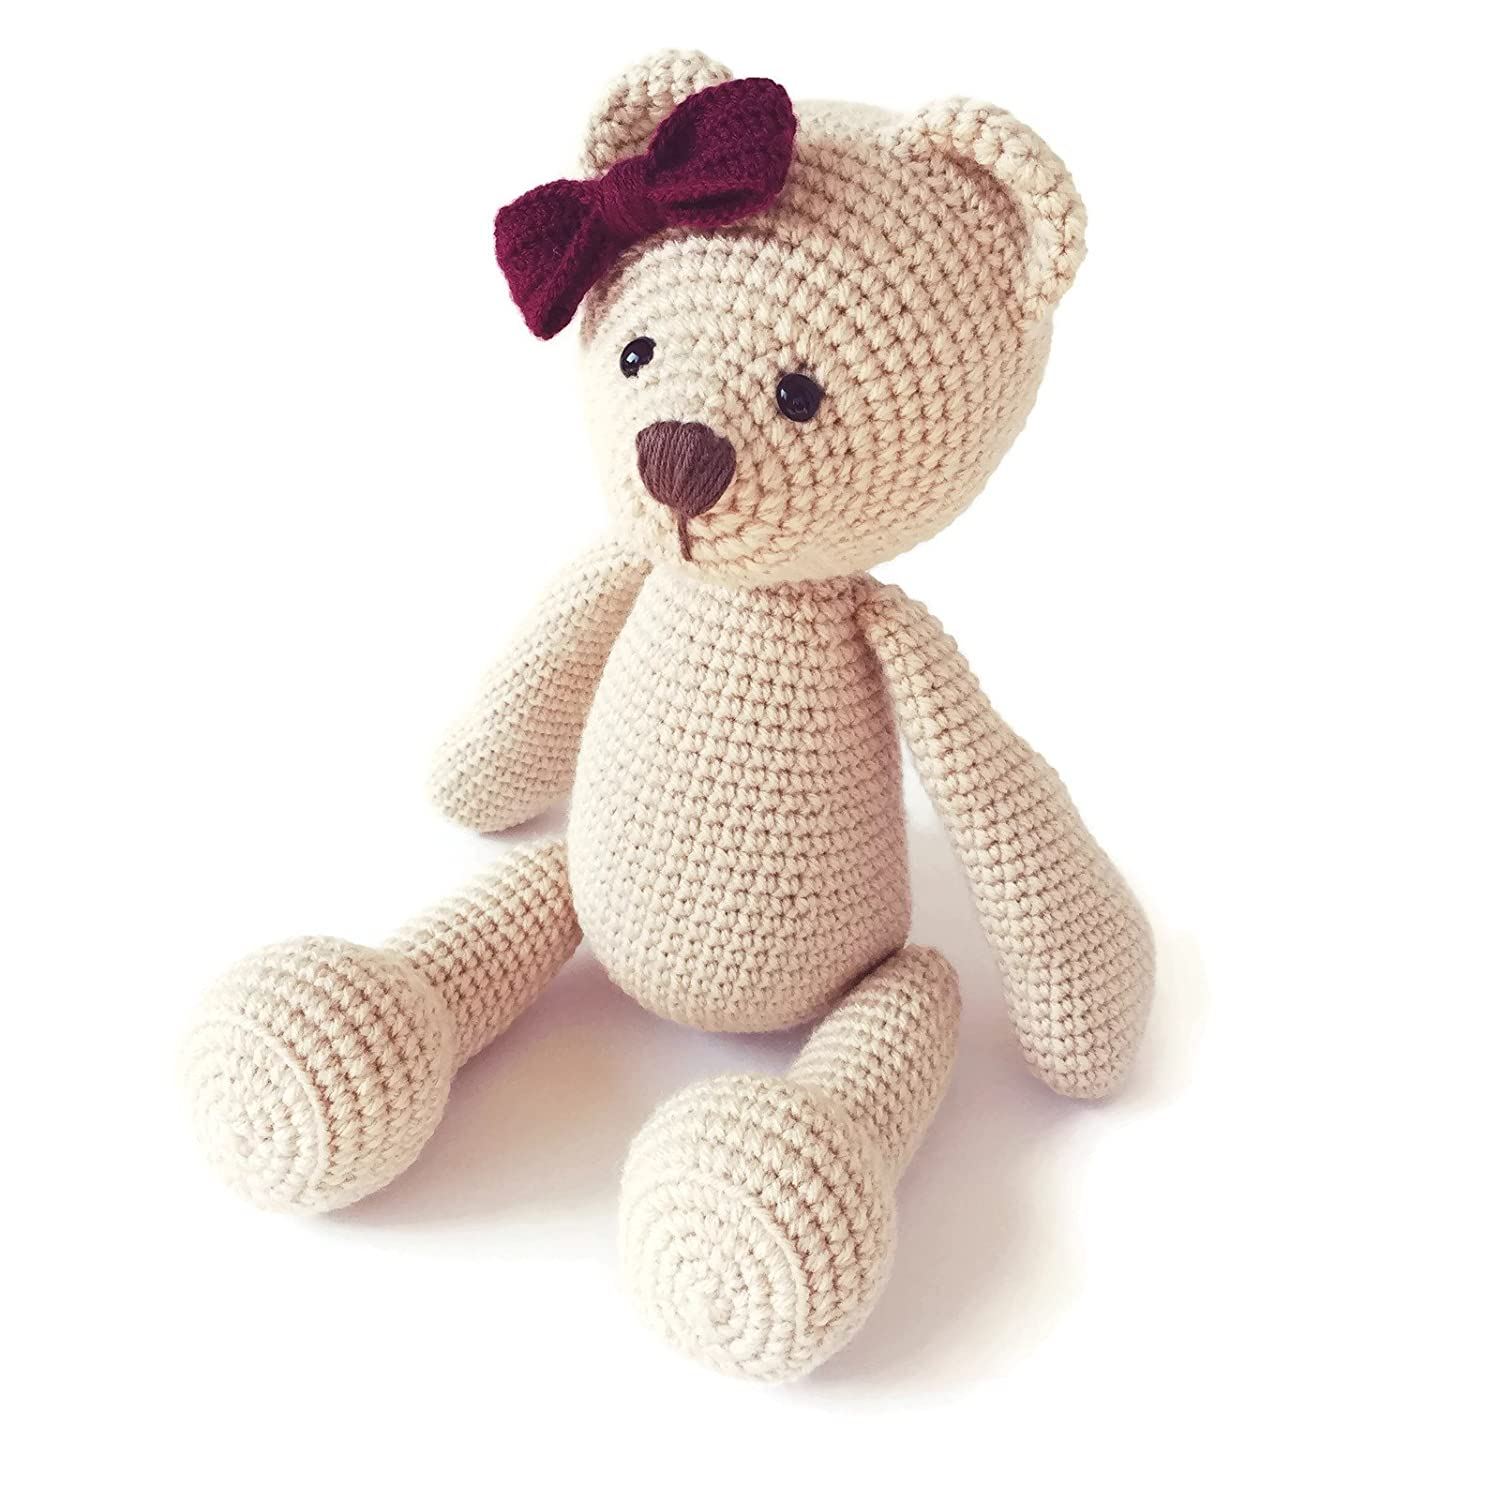 How To Make A Cute Small Crocheted Teddy Bear - DIY Crafts ... | 1500x1500